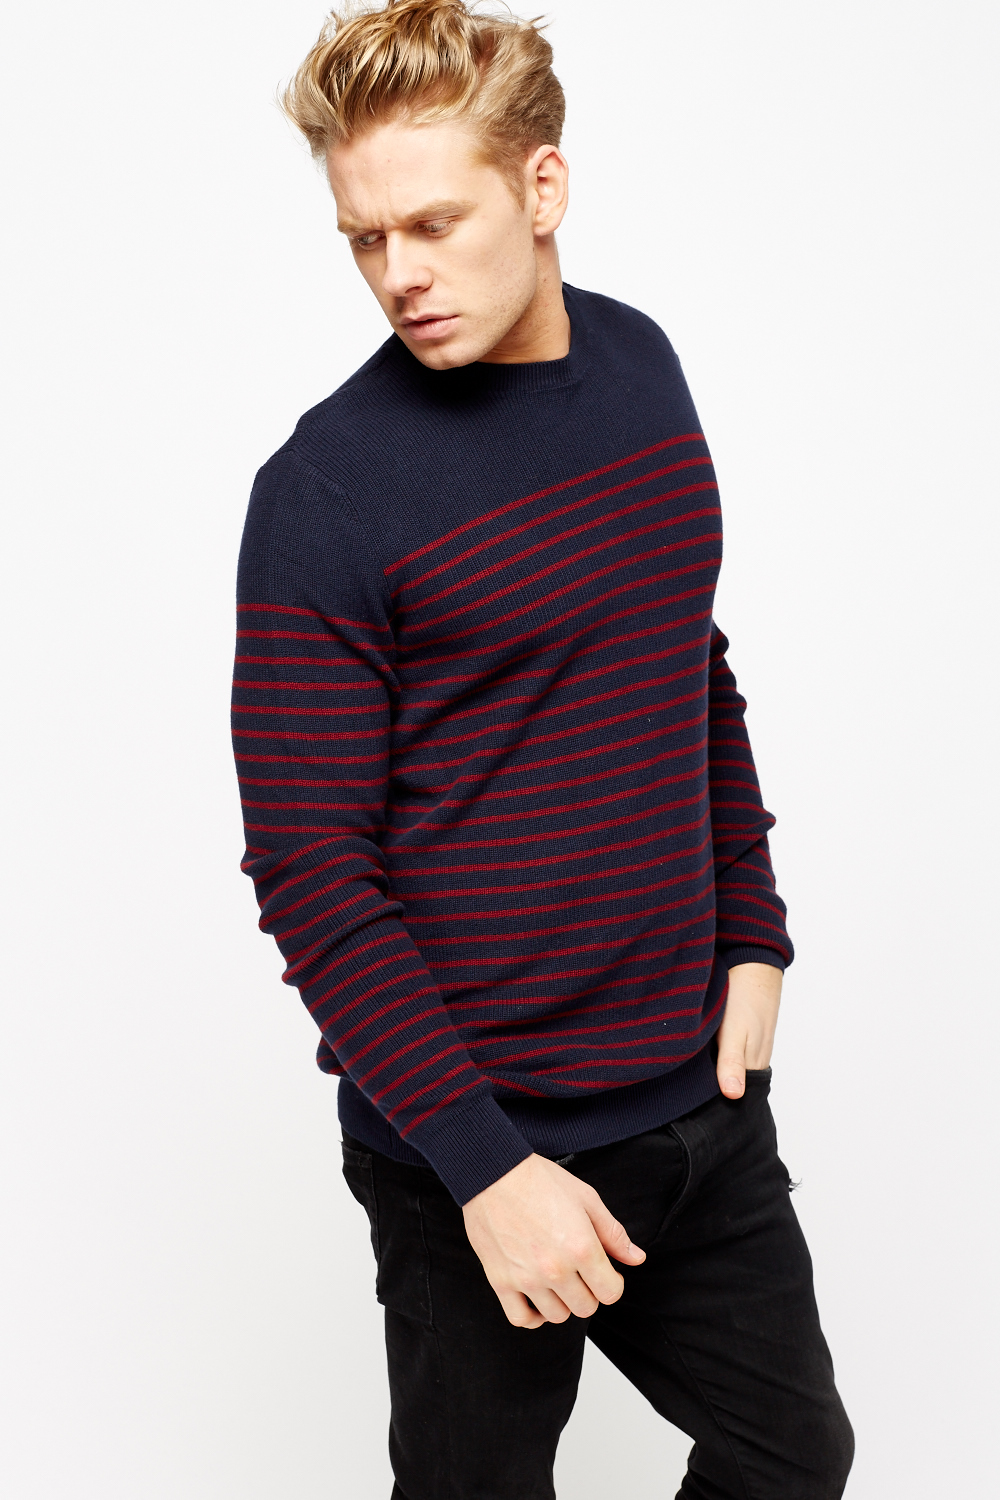 Knitting Mens Jumpers : Striped knitted mens jumper just £